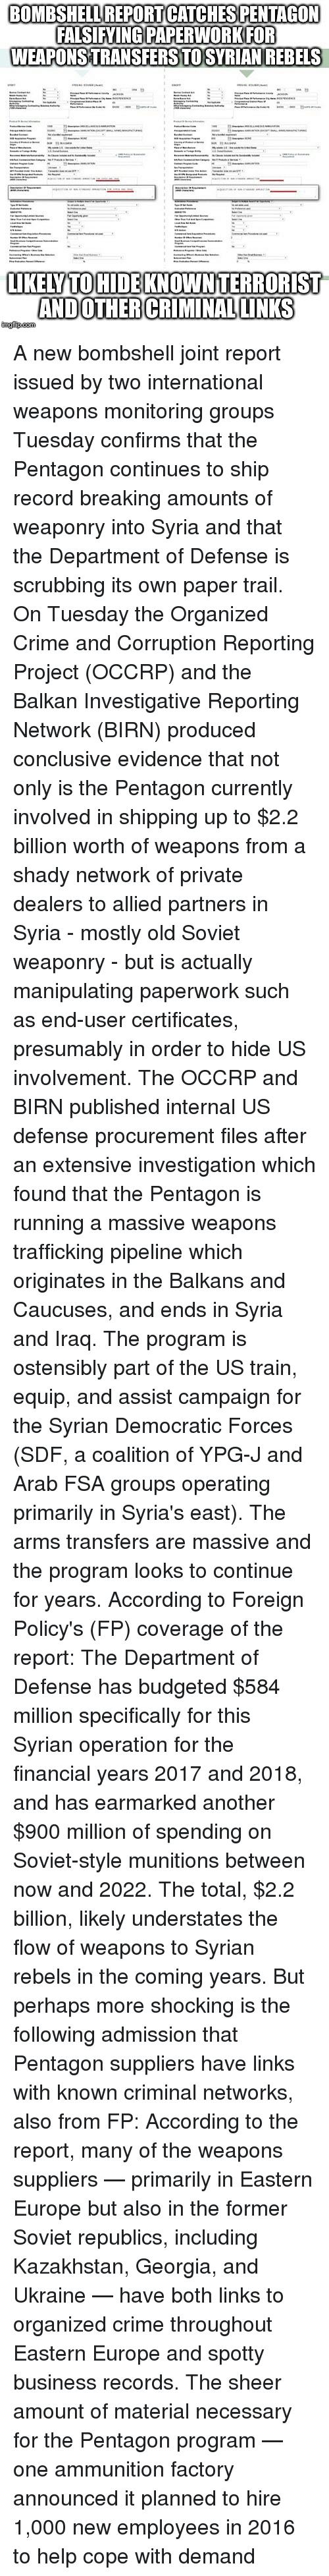 Crime, Memes, and 2017: BOMBSHELL REPORT CATCHES PENTAGON  FAISIYINGPAPERWORKFOR  WEAPONSTRANSFERS TOSYRIAN REBELS  LIKELYTOHIDE KNOWNTERRORIST  ANDOTHERCRIMINALLUNKS A new bombshell joint report issued by two international weapons monitoring groups Tuesday confirms that the Pentagon continues to ship record breaking amounts of weaponry into Syria and that the Department of Defense is scrubbing its own paper trail. On Tuesday the Organized Crime and Corruption Reporting Project (OCCRP) and the Balkan Investigative Reporting Network (BIRN) produced conclusive evidence that not only is the Pentagon currently involved in shipping up to $2.2 billion worth of weapons from a shady network of private dealers to allied partners in Syria - mostly old Soviet weaponry - but is actually manipulating paperwork such as end-user certificates, presumably in order to hide US involvement. The OCCRP and BIRN published internal US defense procurement files after an extensive investigation which found that the Pentagon is running a massive weapons trafficking pipeline which originates in the Balkans and Caucuses, and ends in Syria and Iraq. The program is ostensibly part of the US train, equip, and assist campaign for the Syrian Democratic Forces (SDF, a coalition of YPG-J and Arab FSA groups operating primarily in Syria's east). The arms transfers are massive and the program looks to continue for years. According to Foreign Policy's (FP) coverage of the report: The Department of Defense has budgeted $584 million specifically for this Syrian operation for the financial years 2017 and 2018, and has earmarked another $900 million of spending on Soviet-style munitions between now and 2022. The total, $2.2 billion, likely understates the flow of weapons to Syrian rebels in the coming years. But perhaps more shocking is the following admission that Pentagon suppliers have links with known criminal networks, also from FP: According to the report, many of the weapons suppliers — primarily in Eastern Europe but also in the former Soviet republics, including Kazakhstan, Georgia, and Ukraine — have both links to organized crime throughout Eastern Europe and spotty business records. The sheer amount of material necessary for the Pentagon program — one ammunition factory announced it planned to hire 1,000 new employees in 2016 to help cope with demand